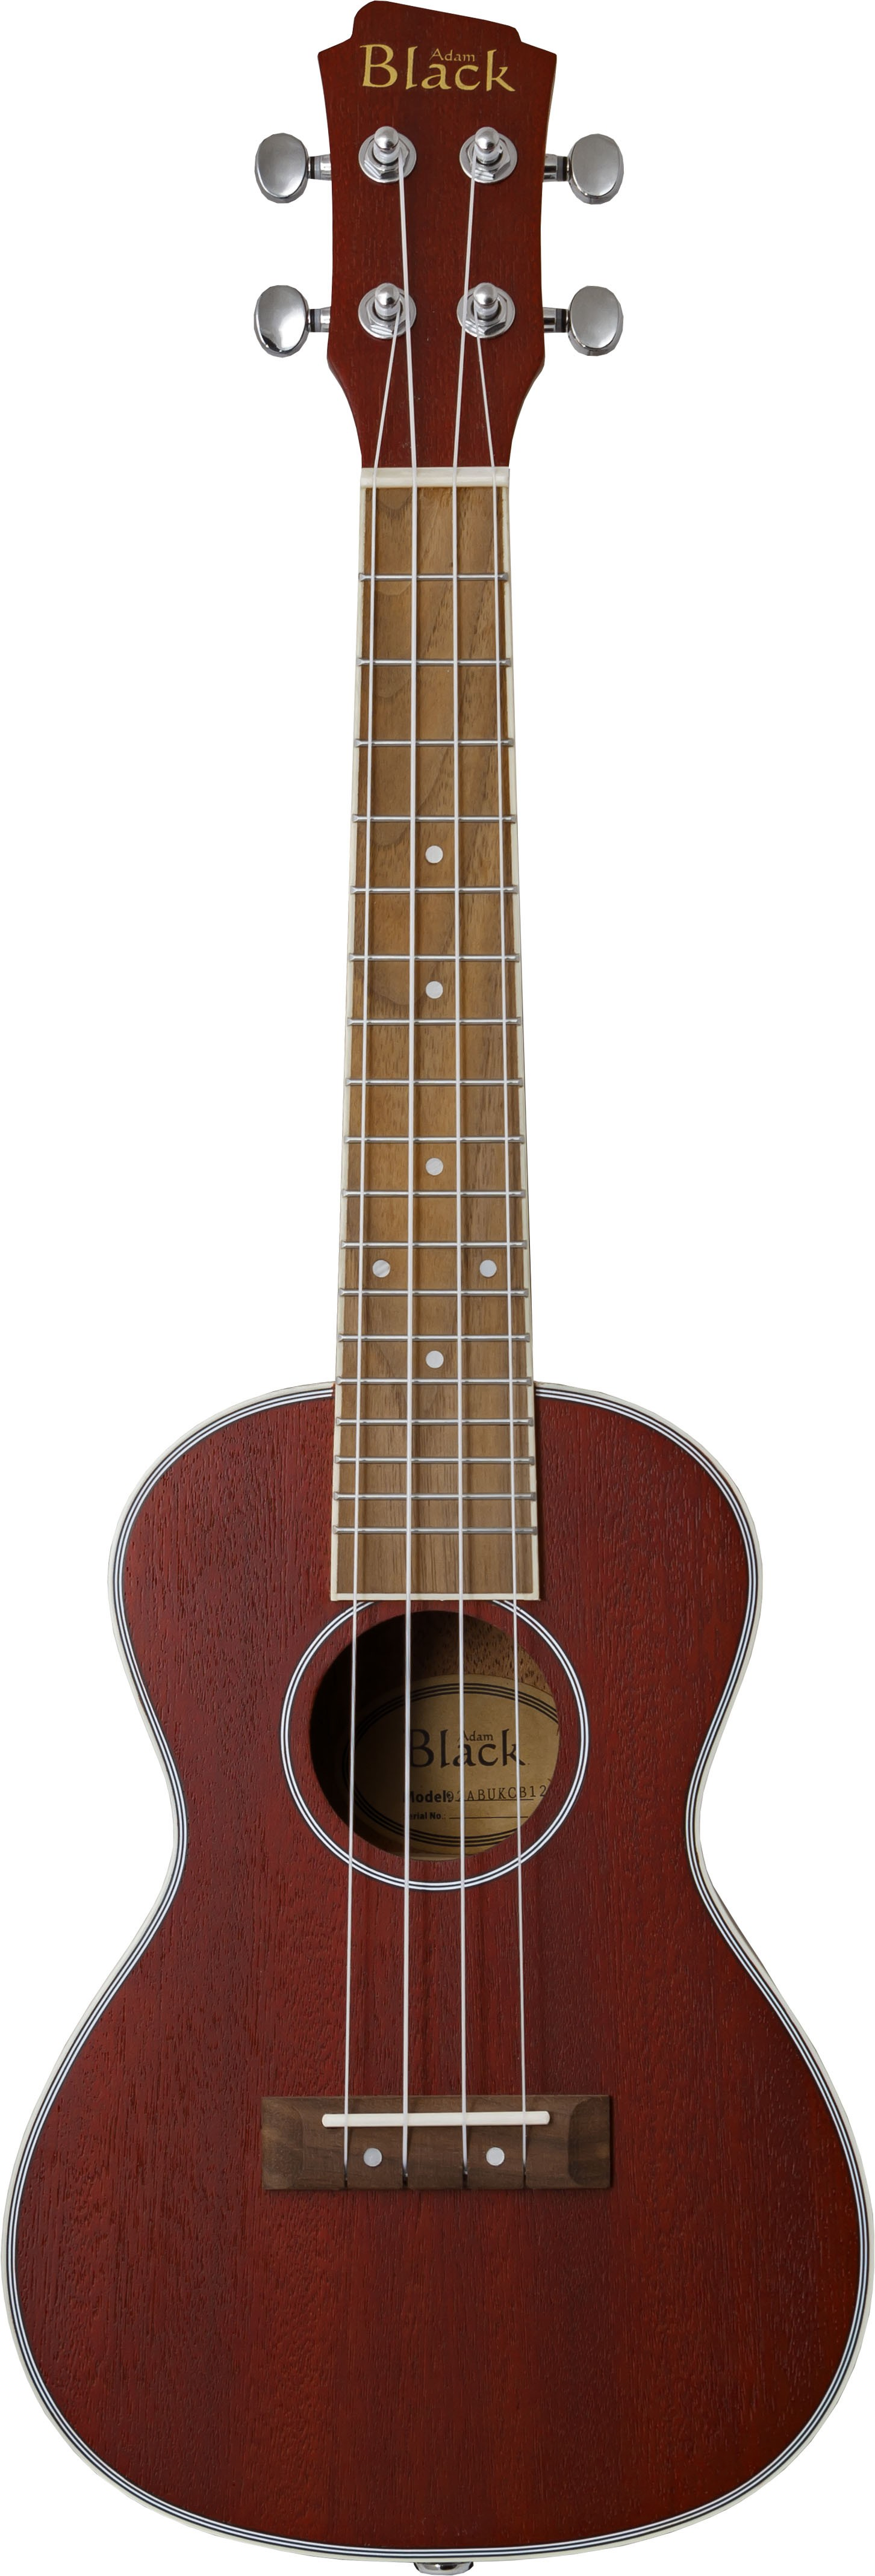 Adam Black CB120 Electro Concert Ukulele - Wine Red